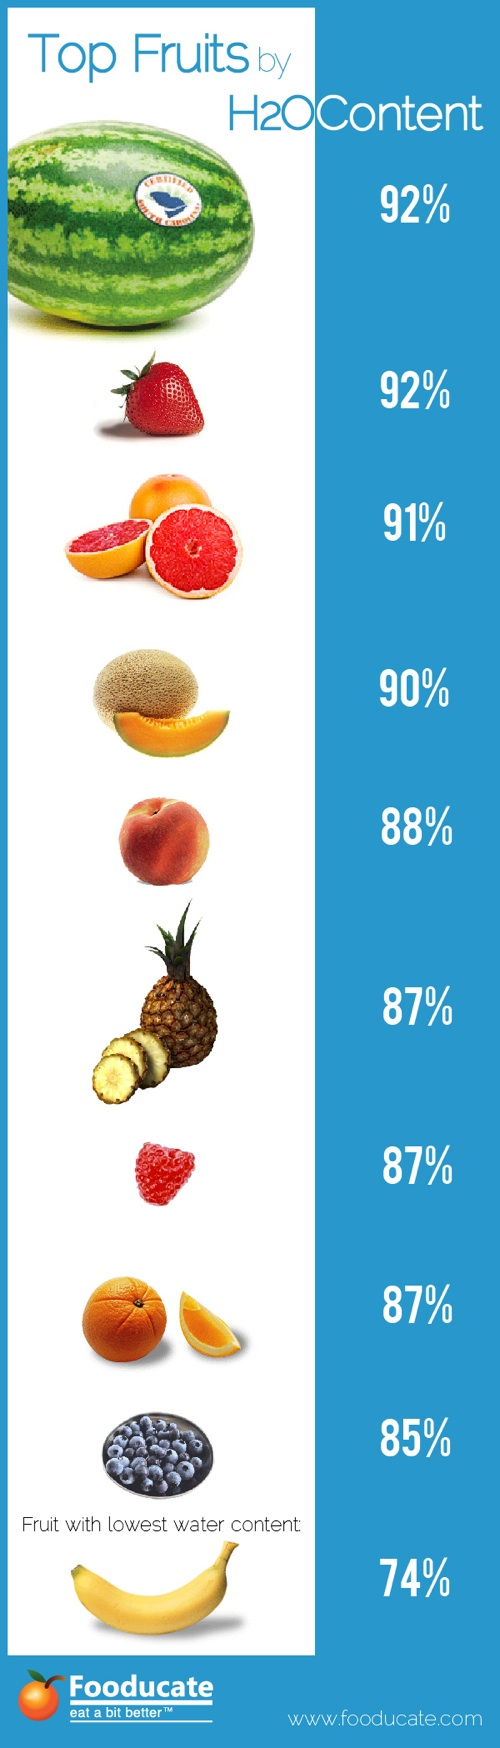 Top Fruits by Water Content